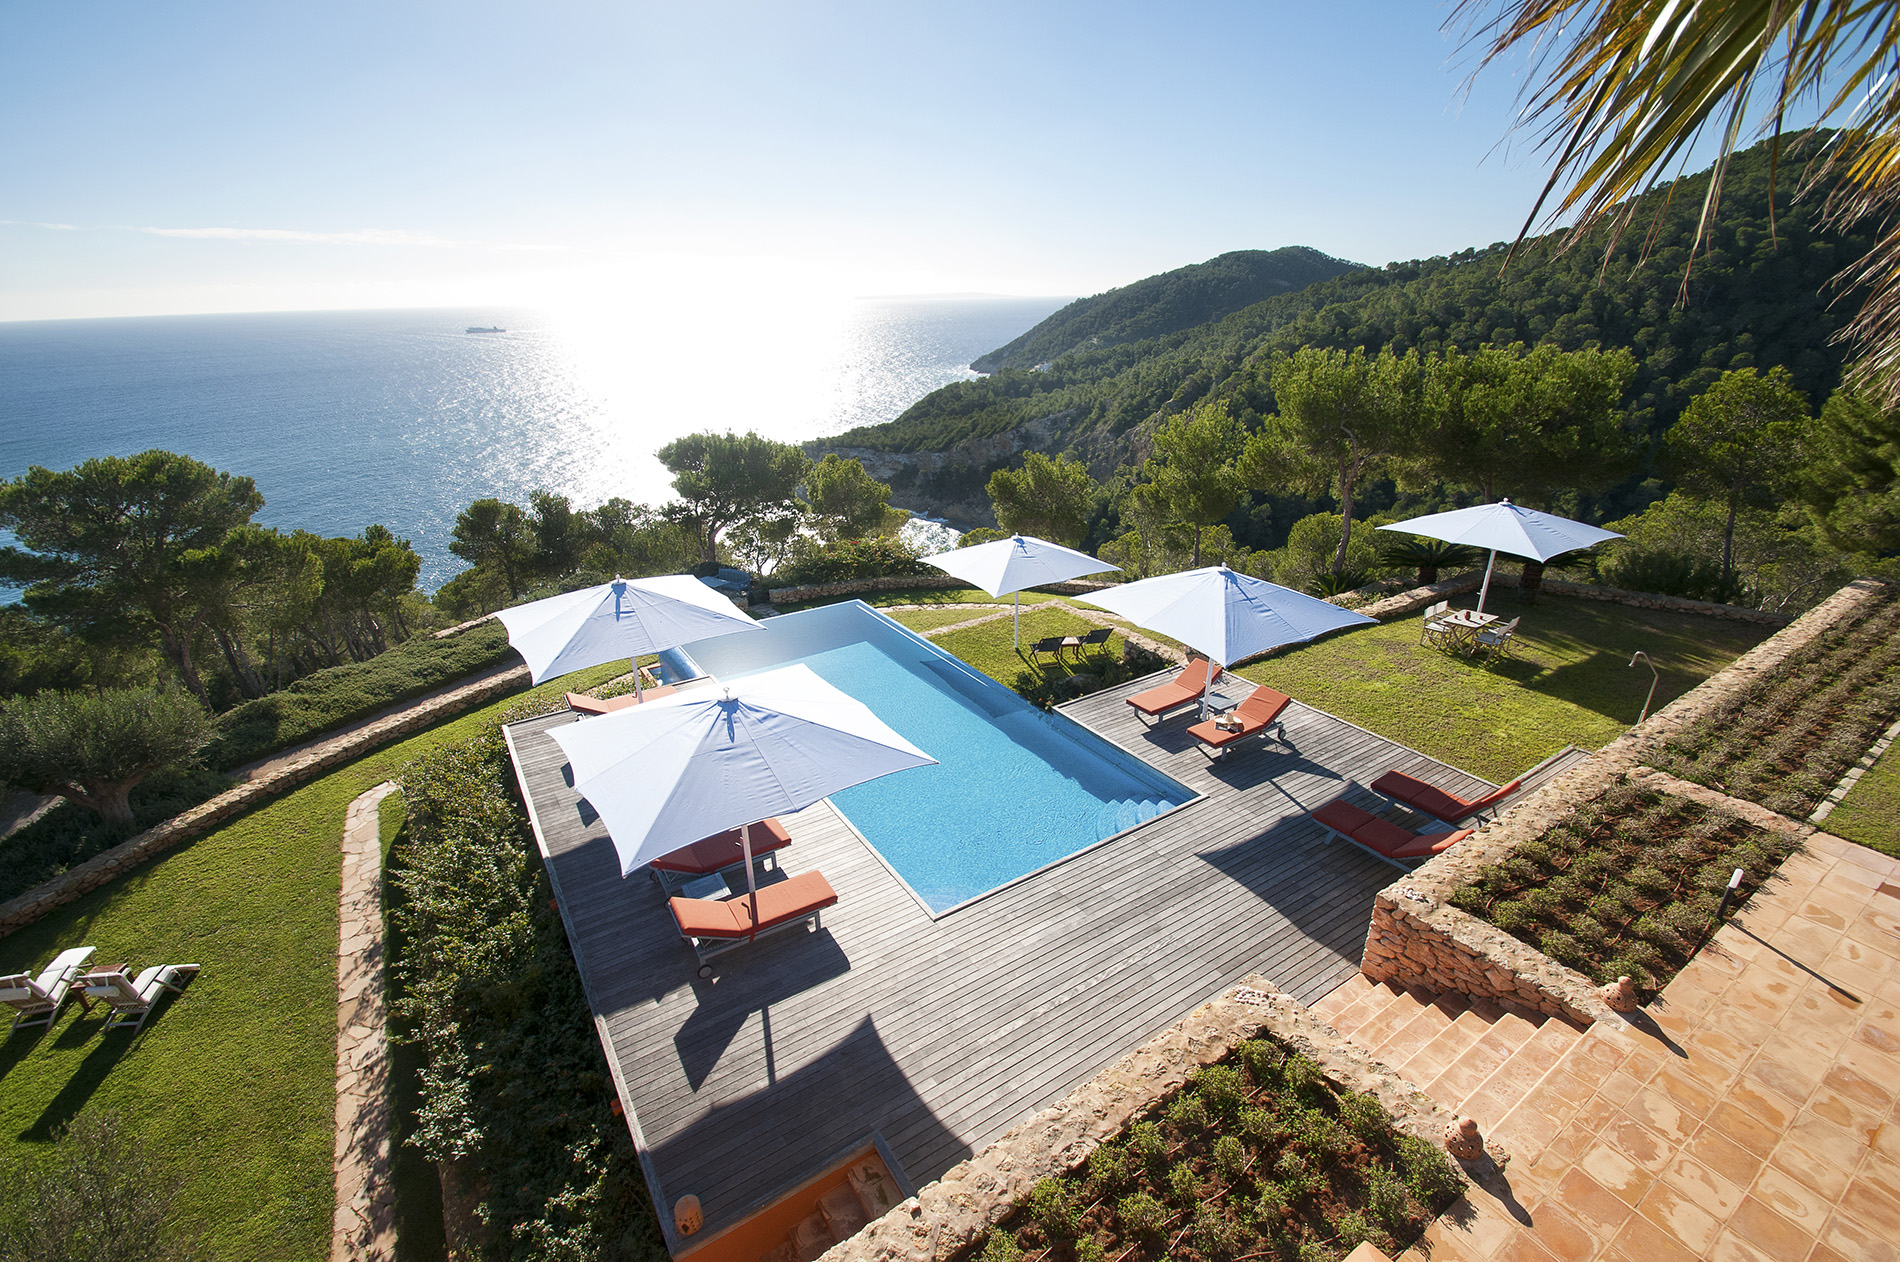 独户住宅 为 销售 在 Rustic Villa With Breathtaking Sea Views Santa Eulalia, 西亚特 07819 西班牙